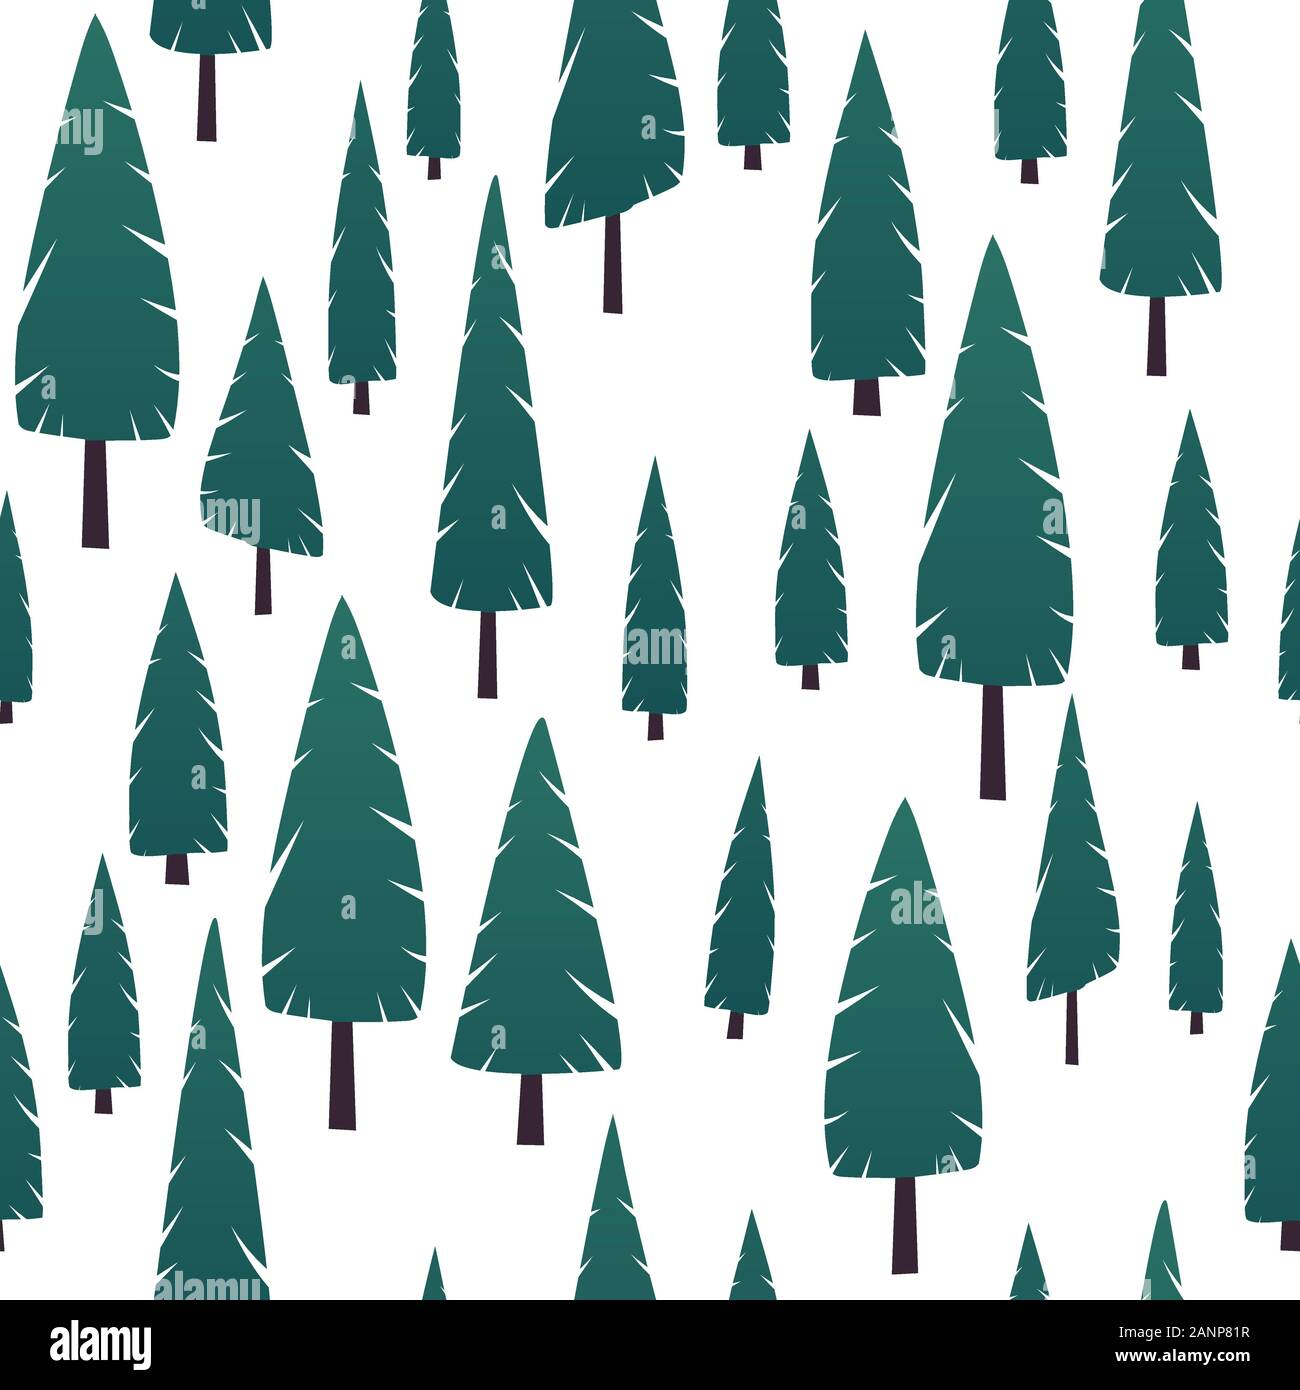 fir tree seamless pattern cartoon style isolated on white background christmas tree vector illustration kids textile or wrapping repeatable tile squ stock vector image art alamy https www alamy com fir tree seamless pattern cartoon style isolated on white background christmas tree vector illustration kids textile or wrapping repeatable tile squ image340394035 html